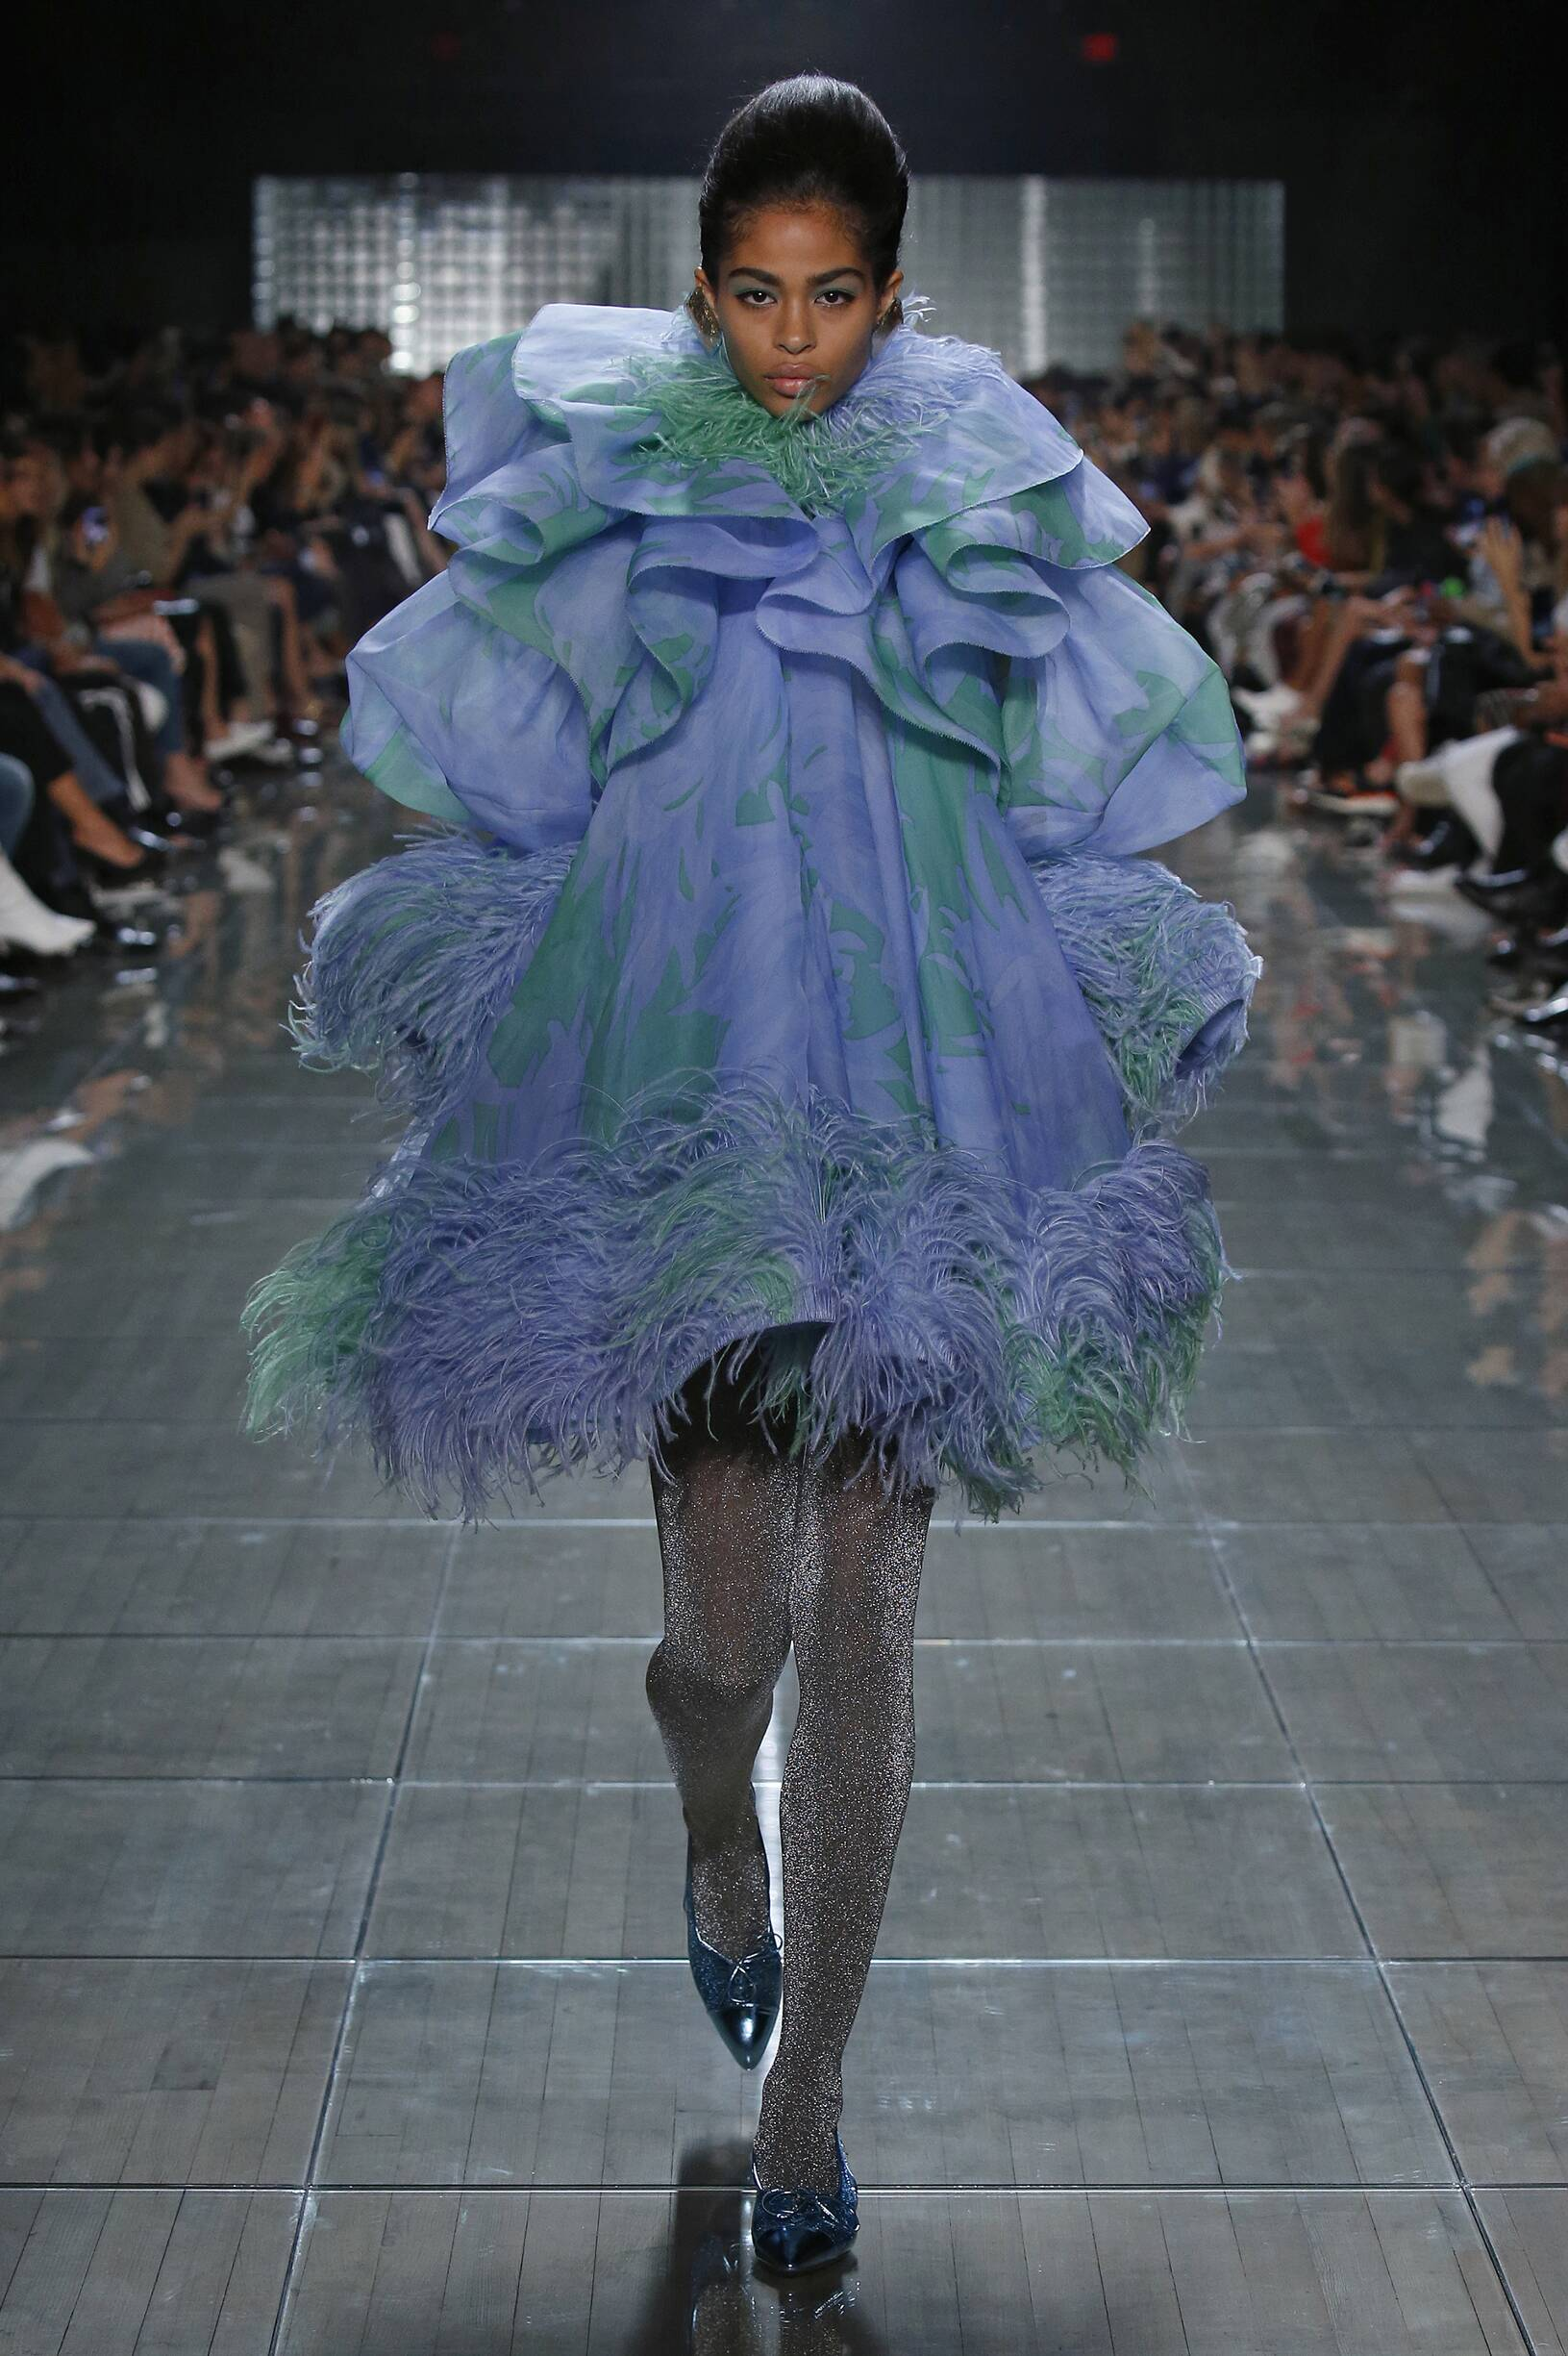 Catwalk Marc Jacobs Woman Fashion Show Summer 2019